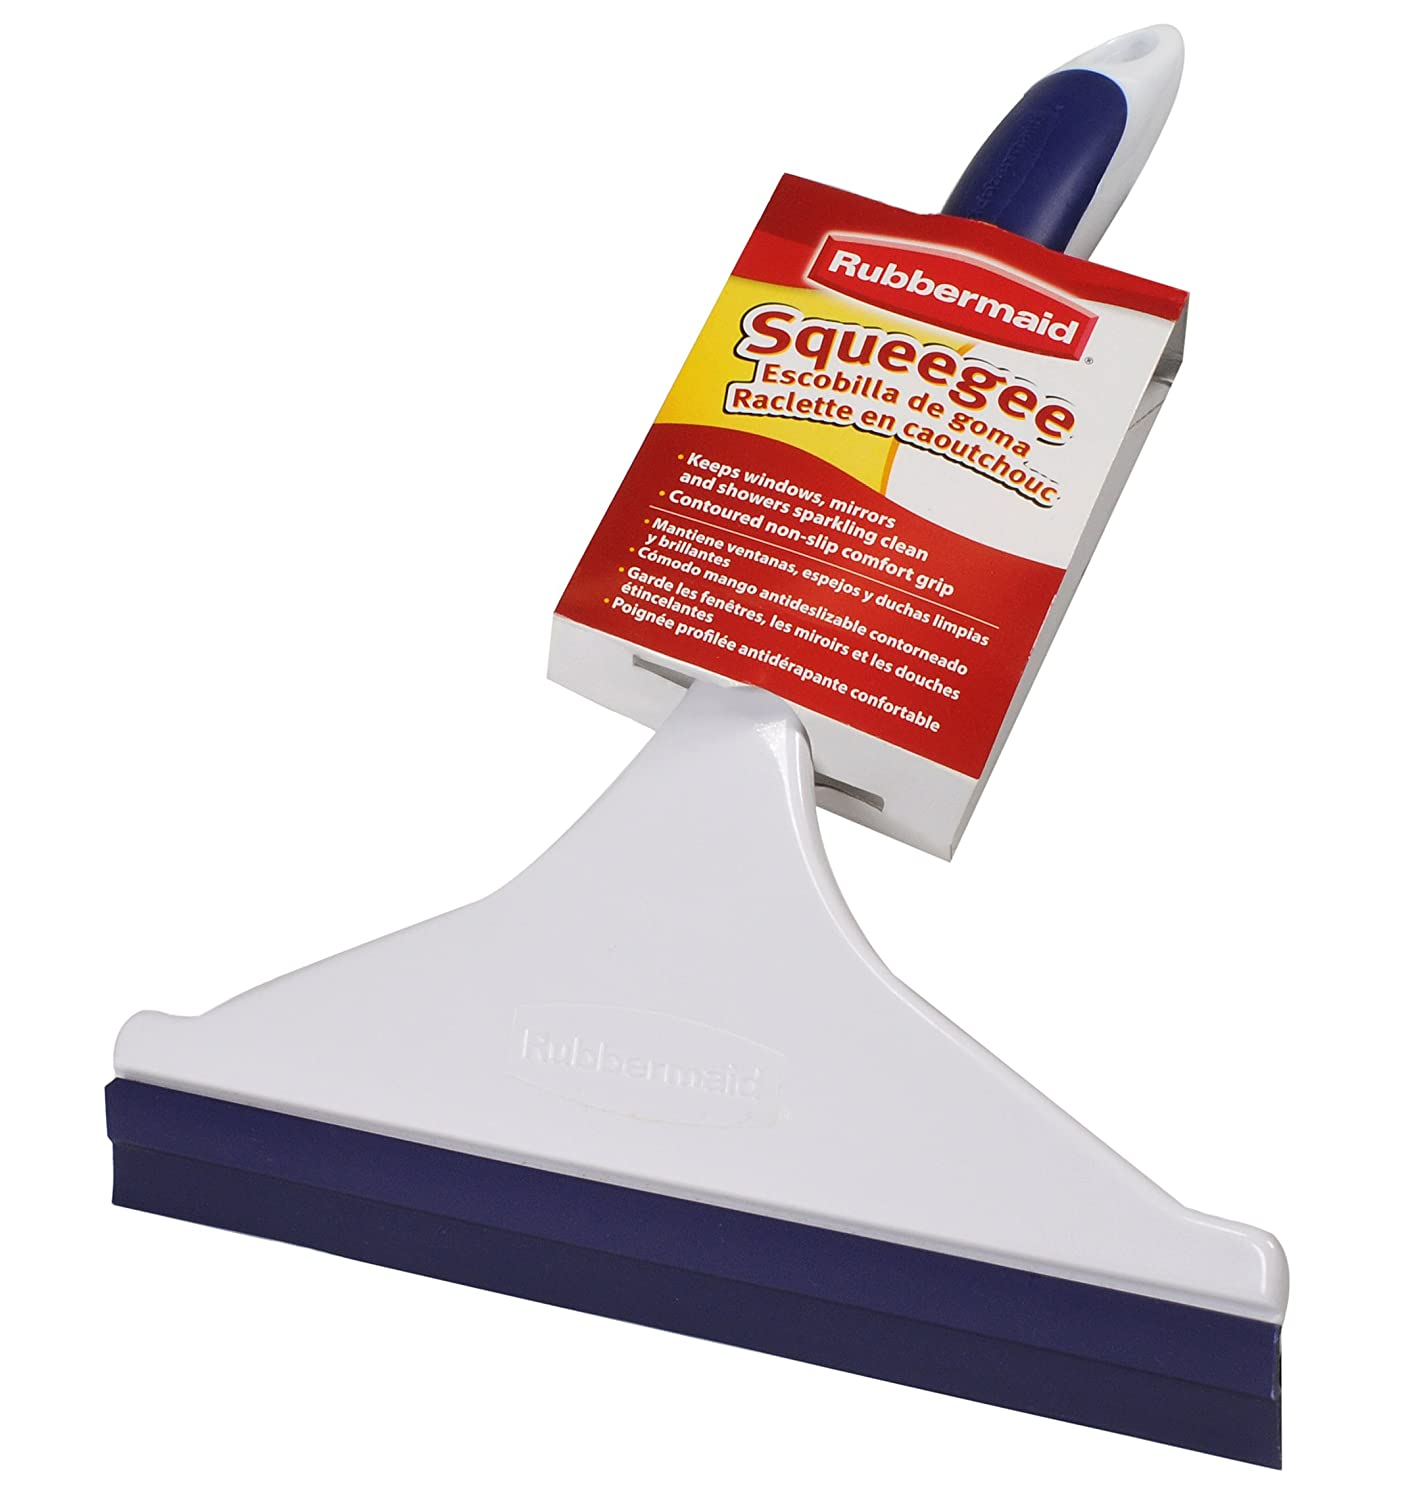 Rubbermaid FG6C0800 Comfort Grip Squeegee Cleaning Brush